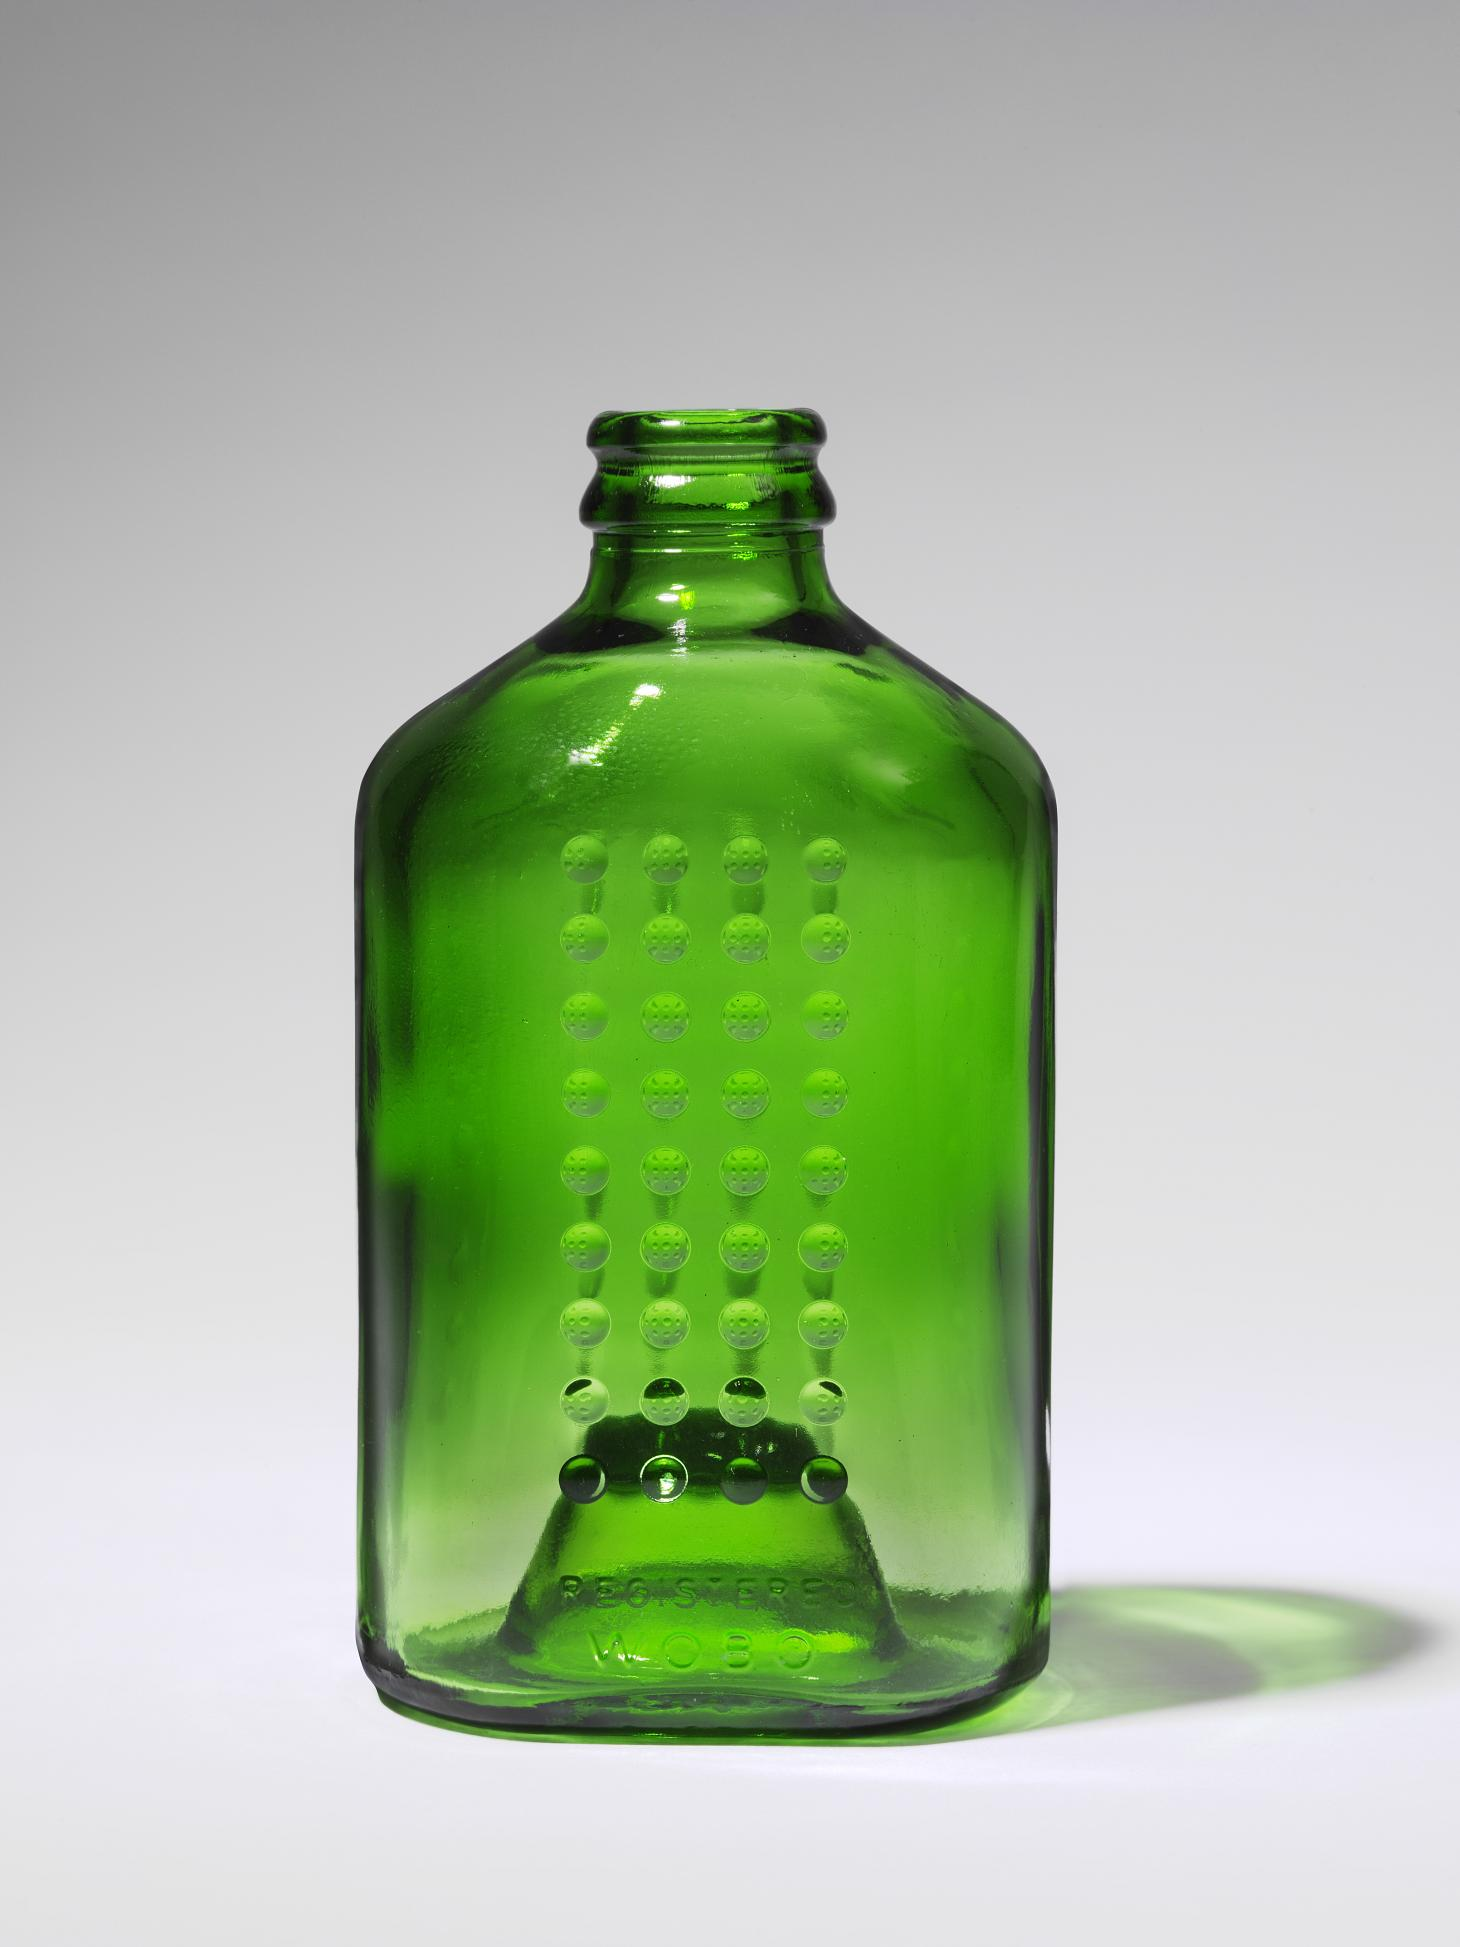 Green glass bottle in the shape of a brick